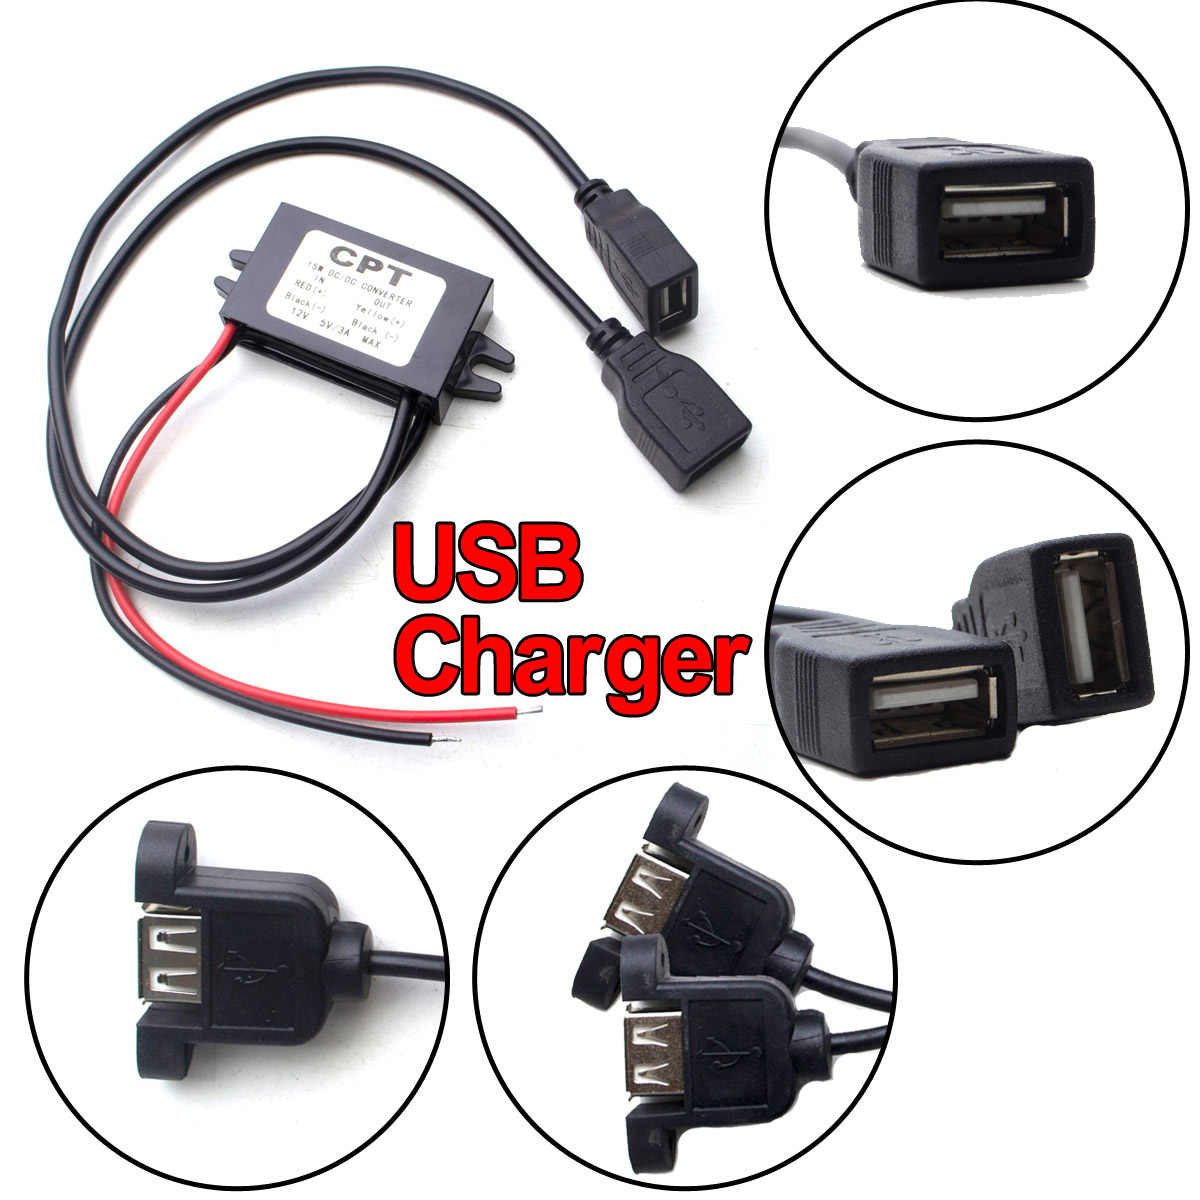 DC-DC 12V untuk 5V 3A 15W Mobil Power Converter Micro Mini USB Step Down Voltage Power Supply output Adaptor Panas Rendah Perlindungan Otomatis